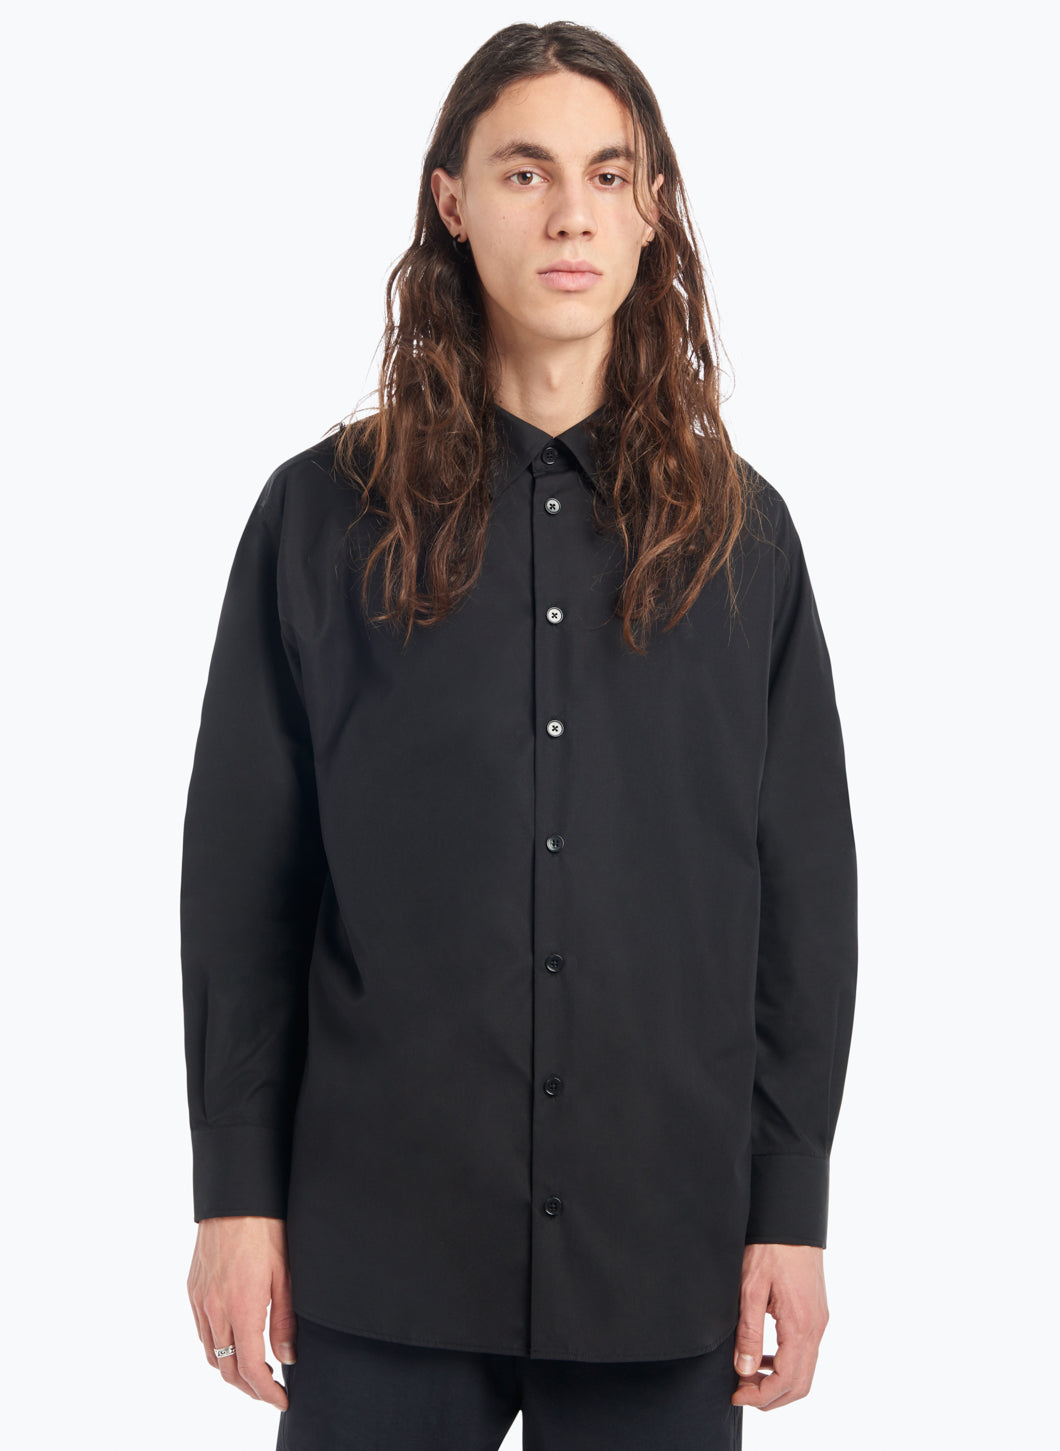 Classic Collar Shirt in Black Poplin